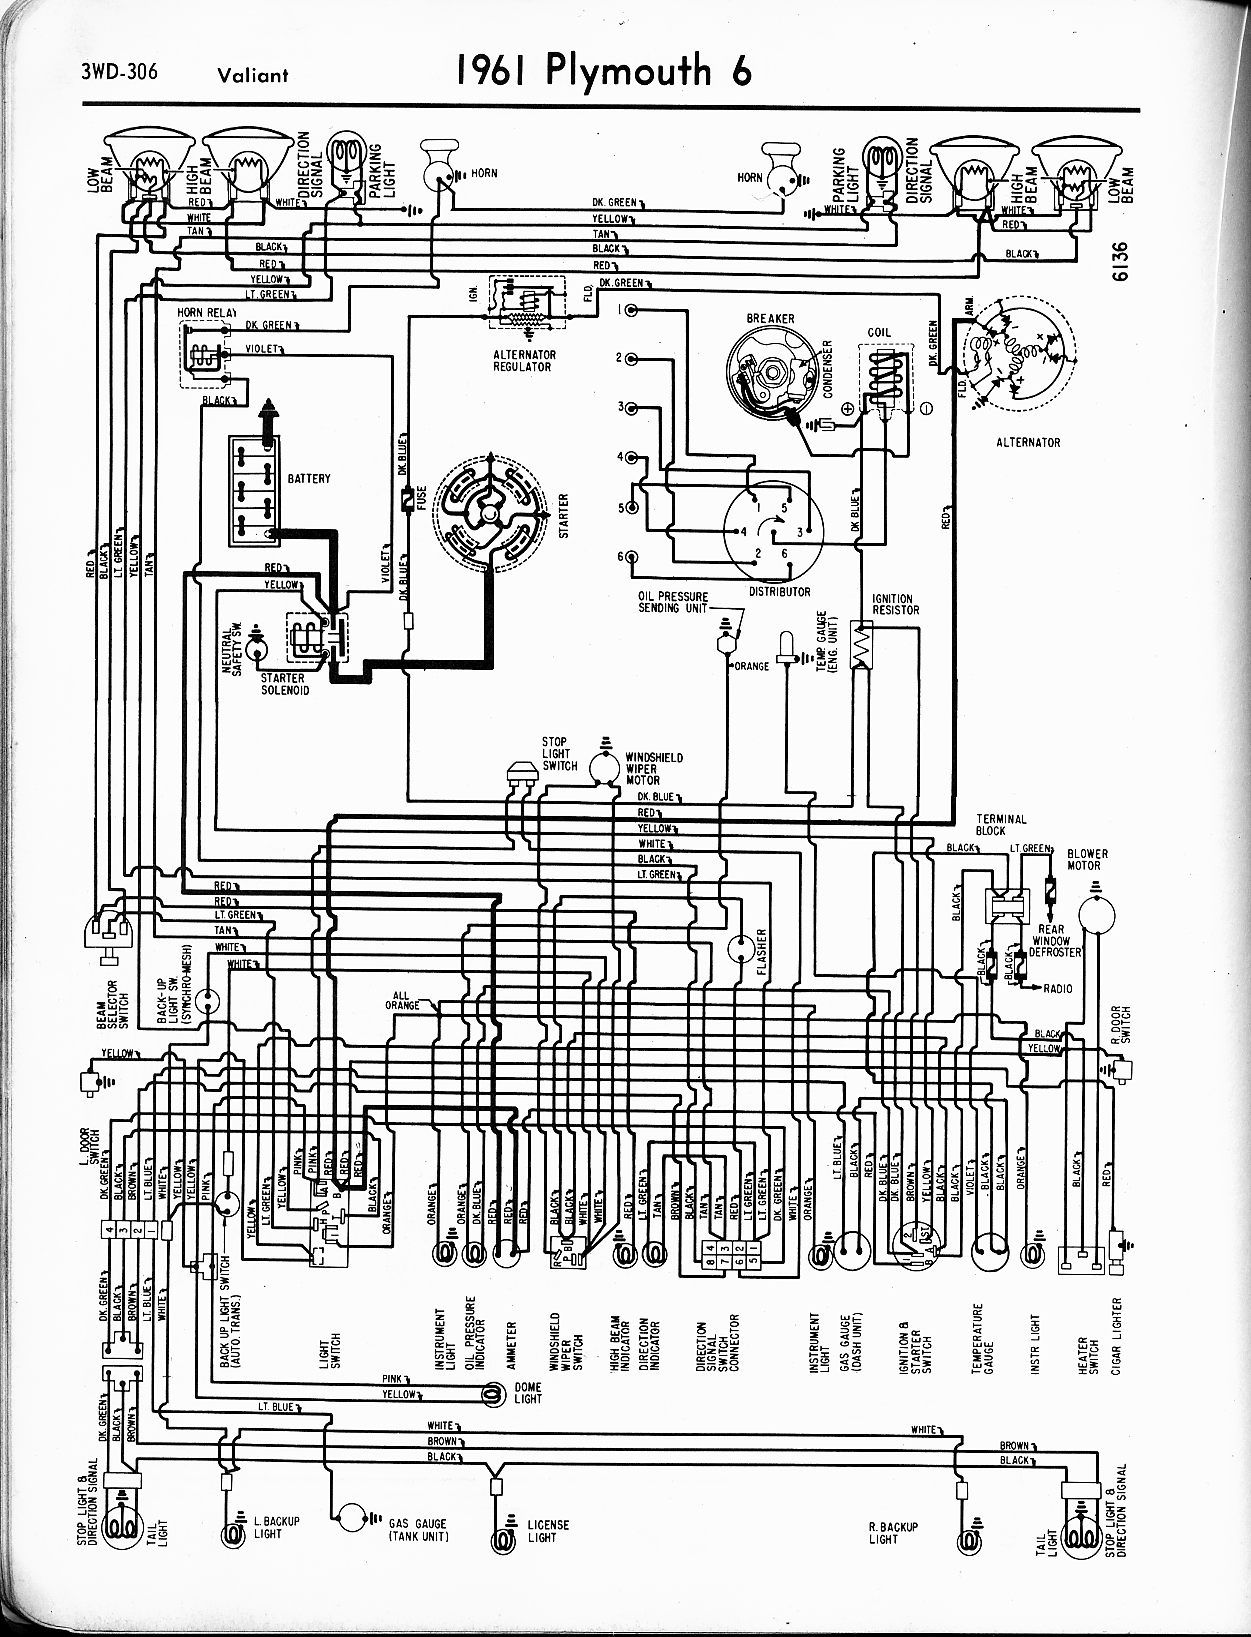 MWire5765 306 1956 1965 plymouth wiring the old car manual project 1968 dodge coronet wiring diagram at readyjetset.co